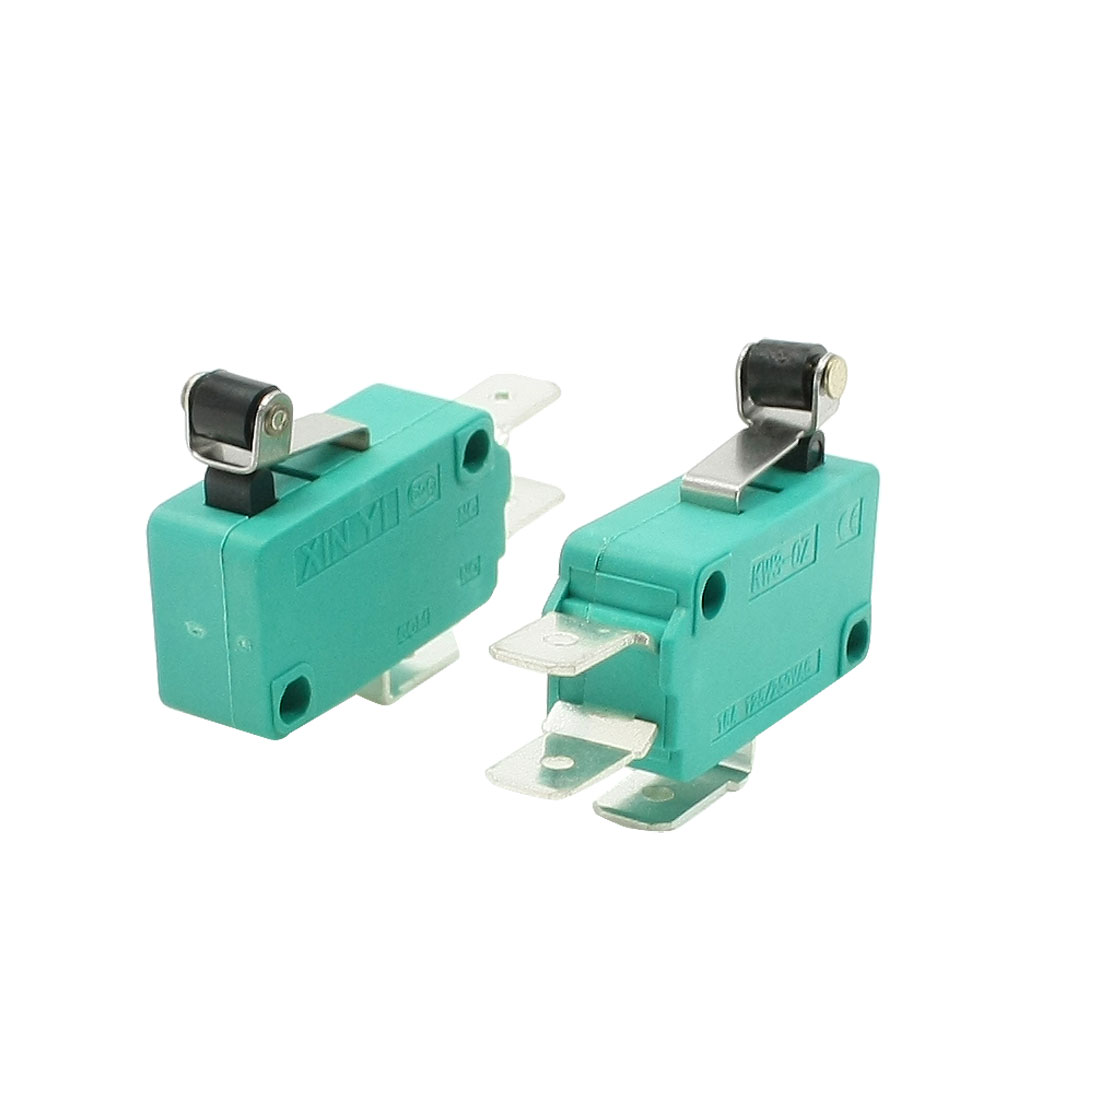 2 Pcs AC 250V 16A SPDT Short Hinge Roller Lever Momentary Micro Switch Green